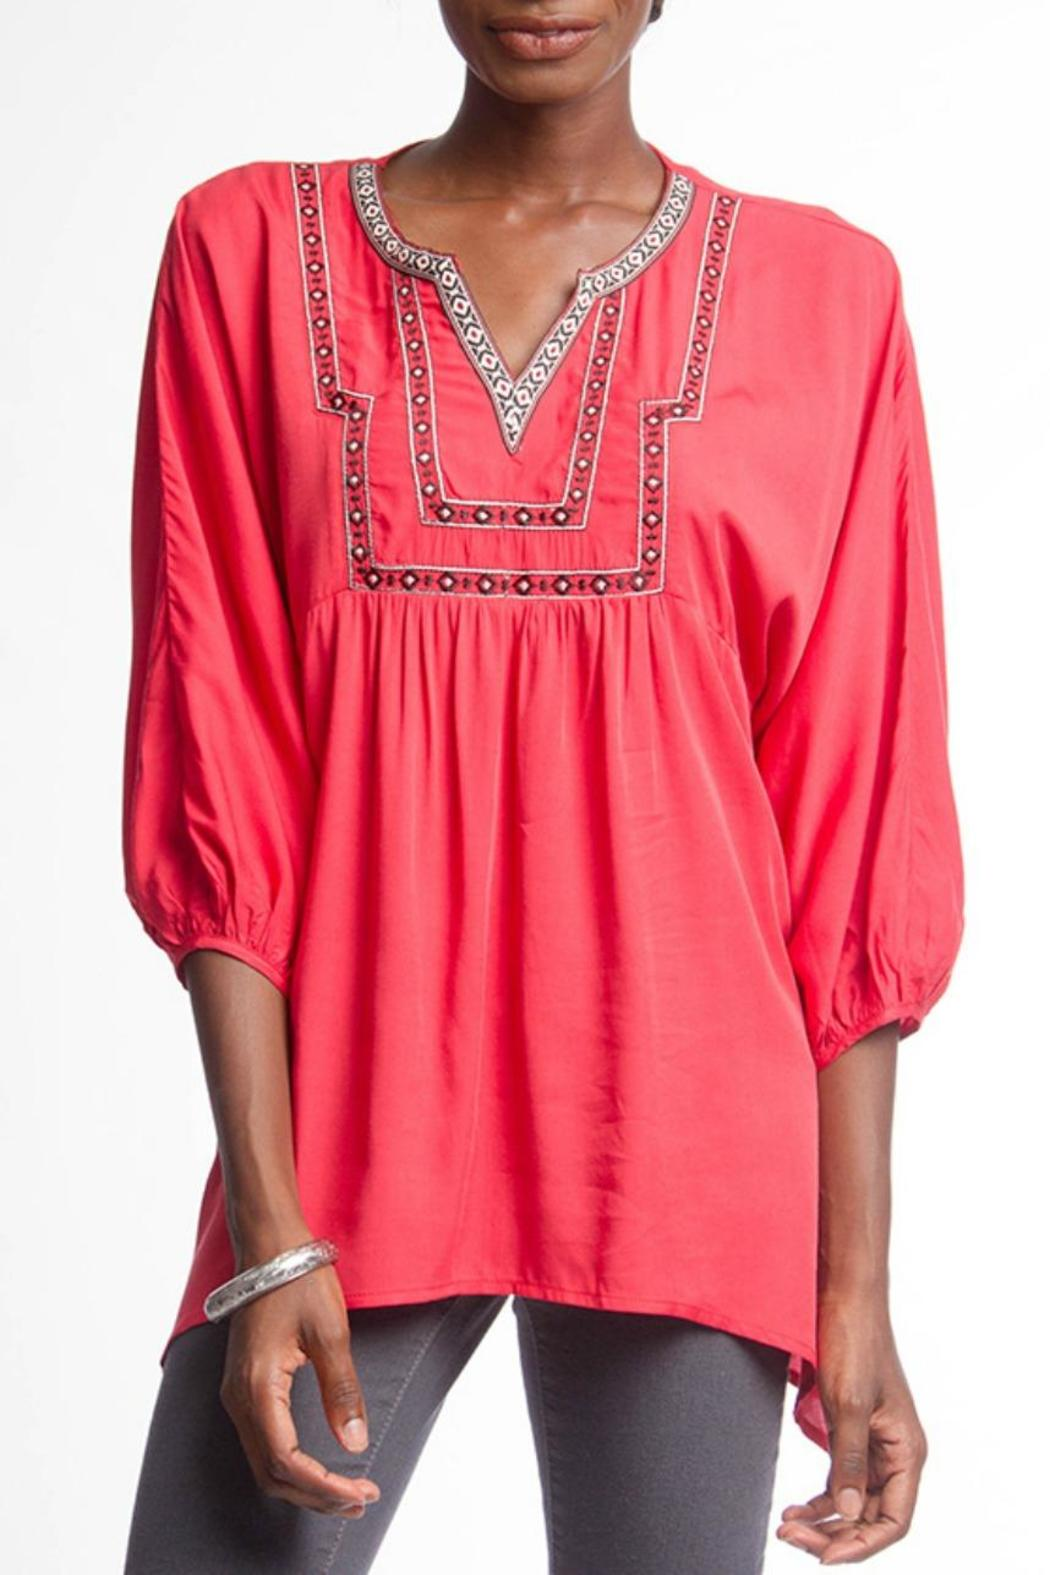 Ya los angeles red embroidered top from new jersey by